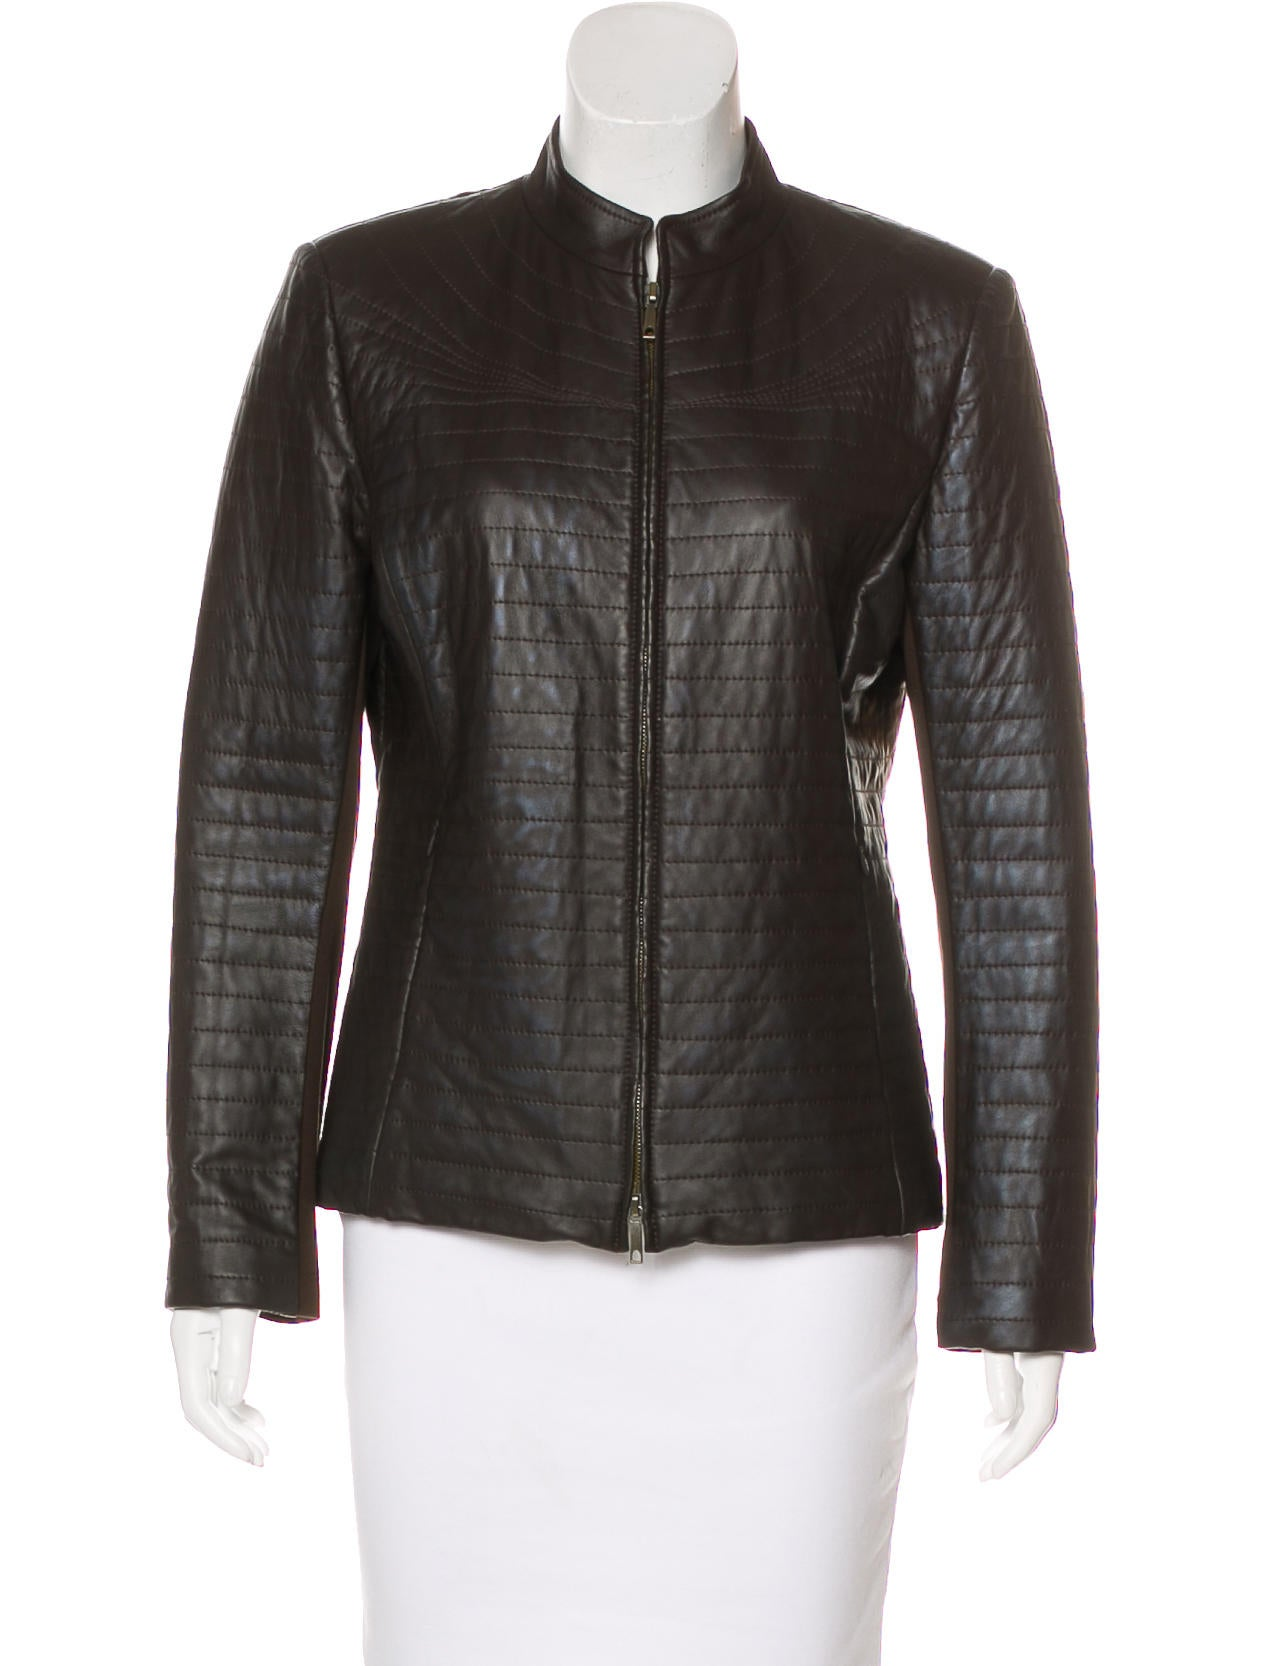 Shop for casual leather riding jackets at the Harley-Davidson Online Store. From distressed to sleek, find the best leather motorcycle jacket for your style. Free Shipping with $50 purchase. Get free standard shipping to your front door or almost anywhere when you make a $50 minimum purchase.